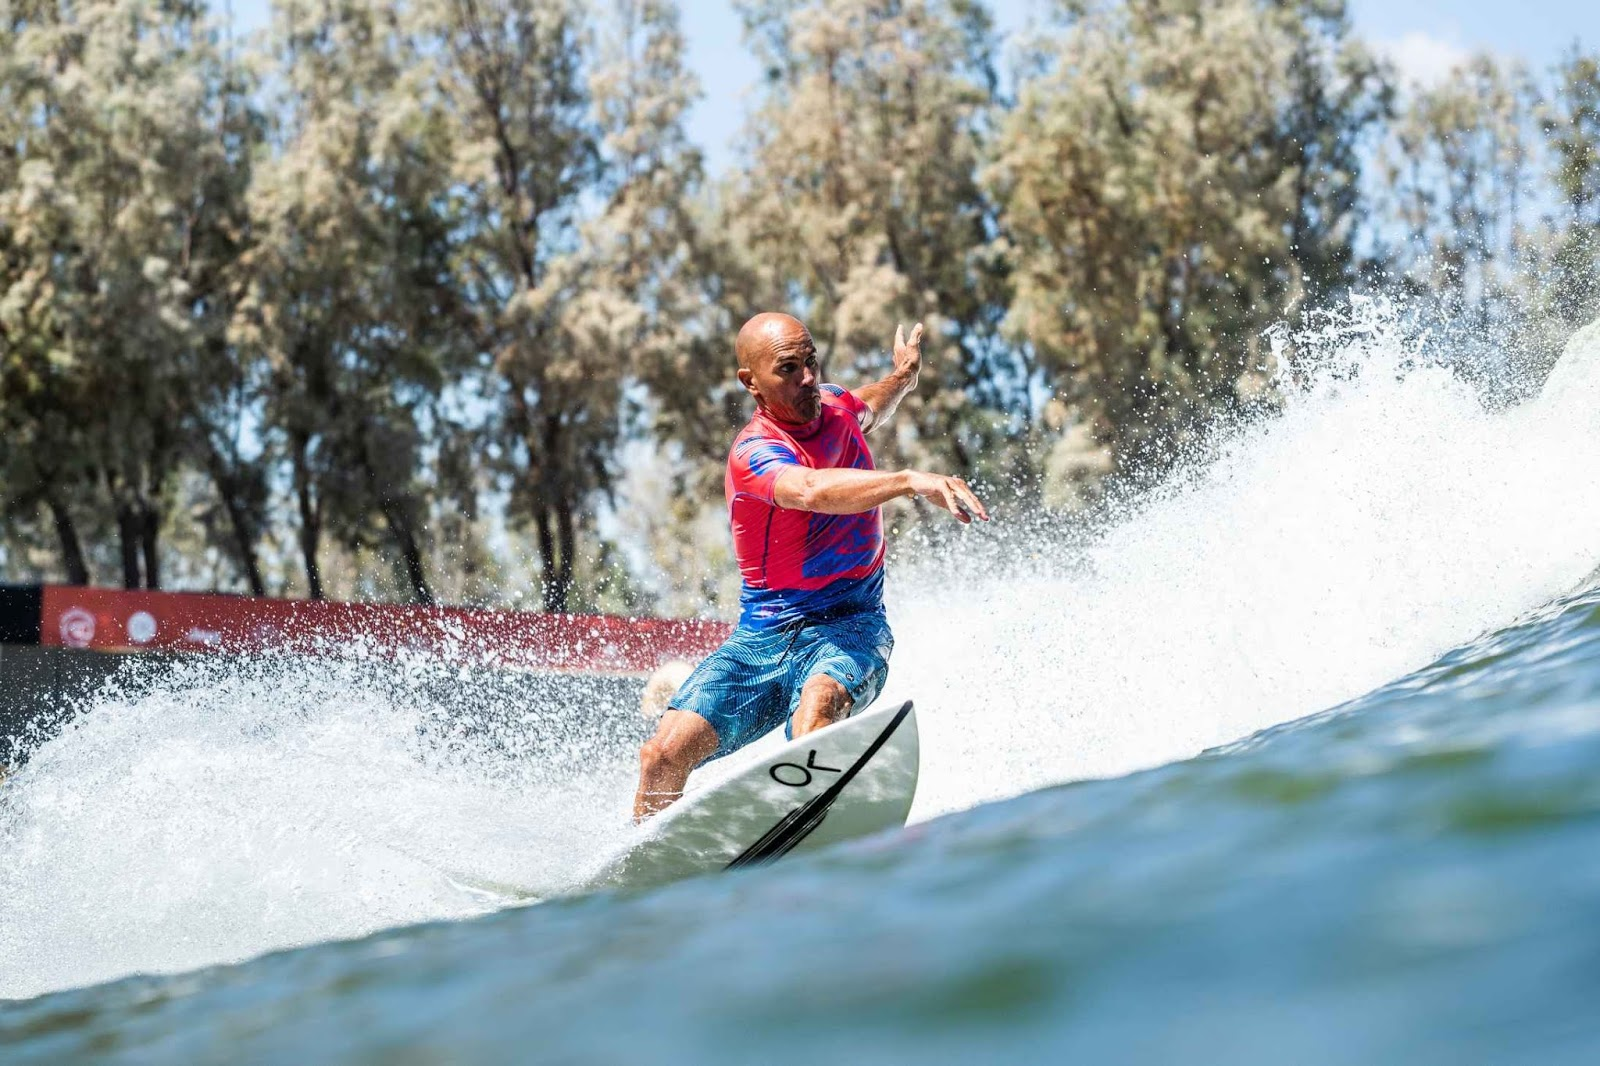 Highlights from Day 1 at the #FreshwaterPro pres by Outerknown